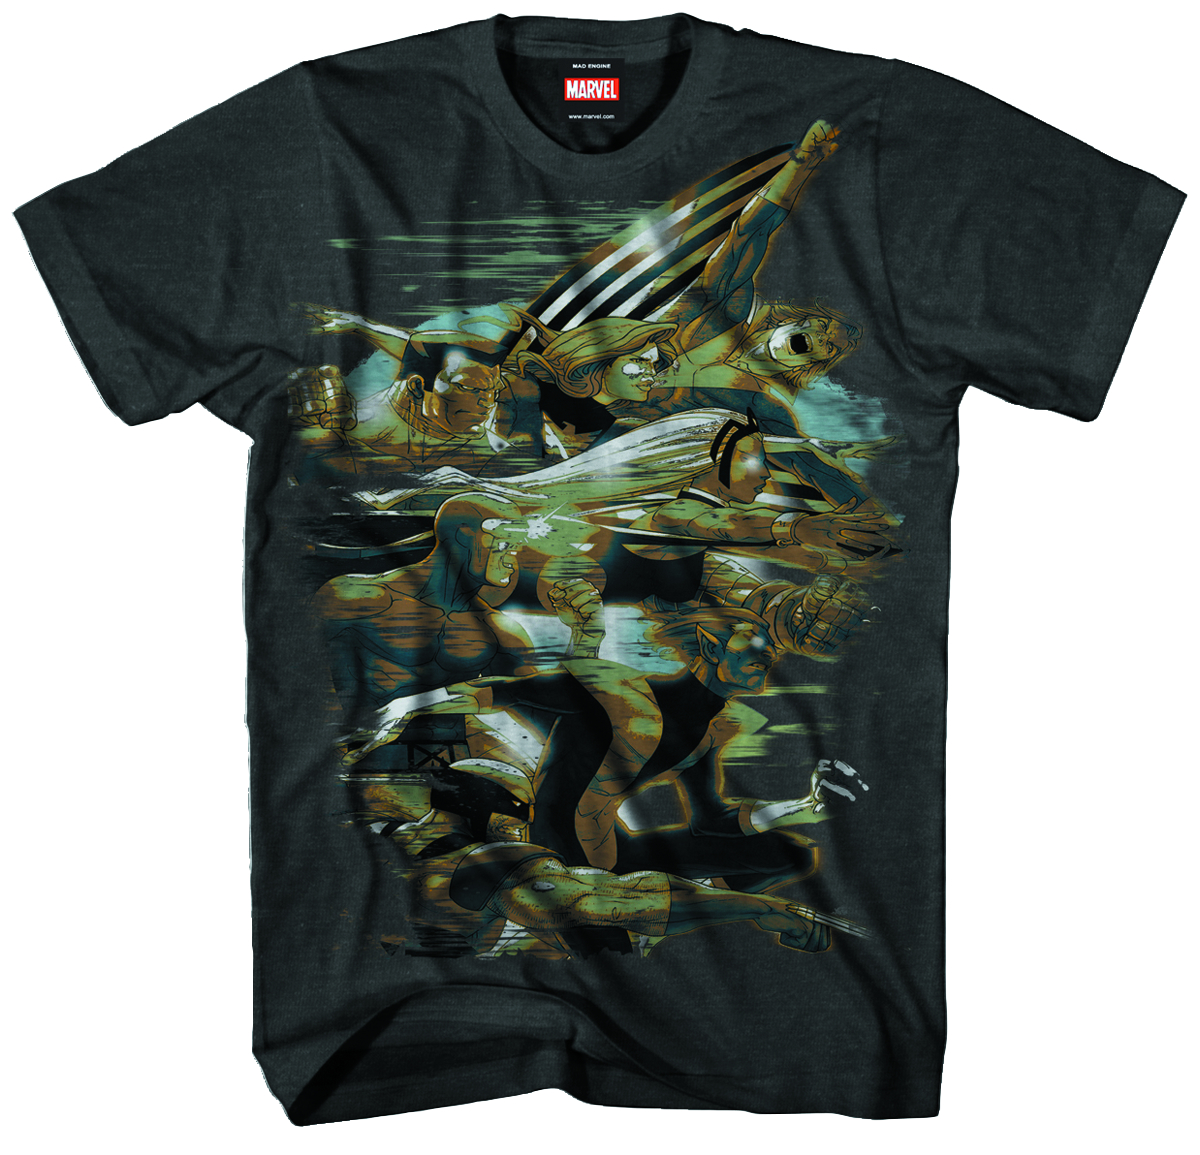 X-MEN FORWARD PX CHARCOAL HEATHER T/S MED